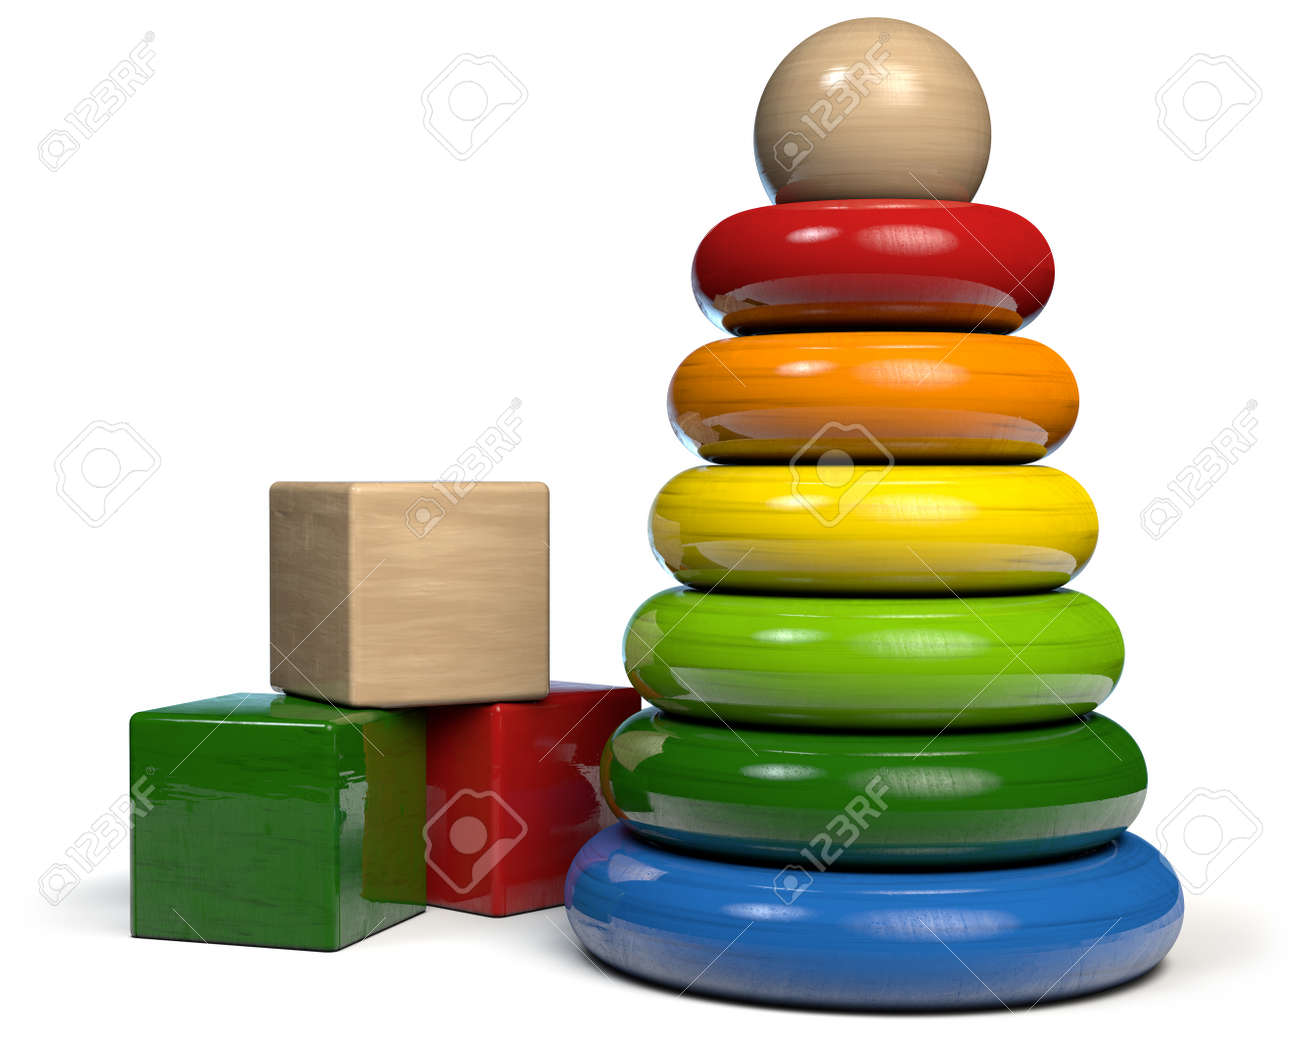 Wooden Toys - Building Blocks and Rings Pyramid. 3D illustration. - 141328965